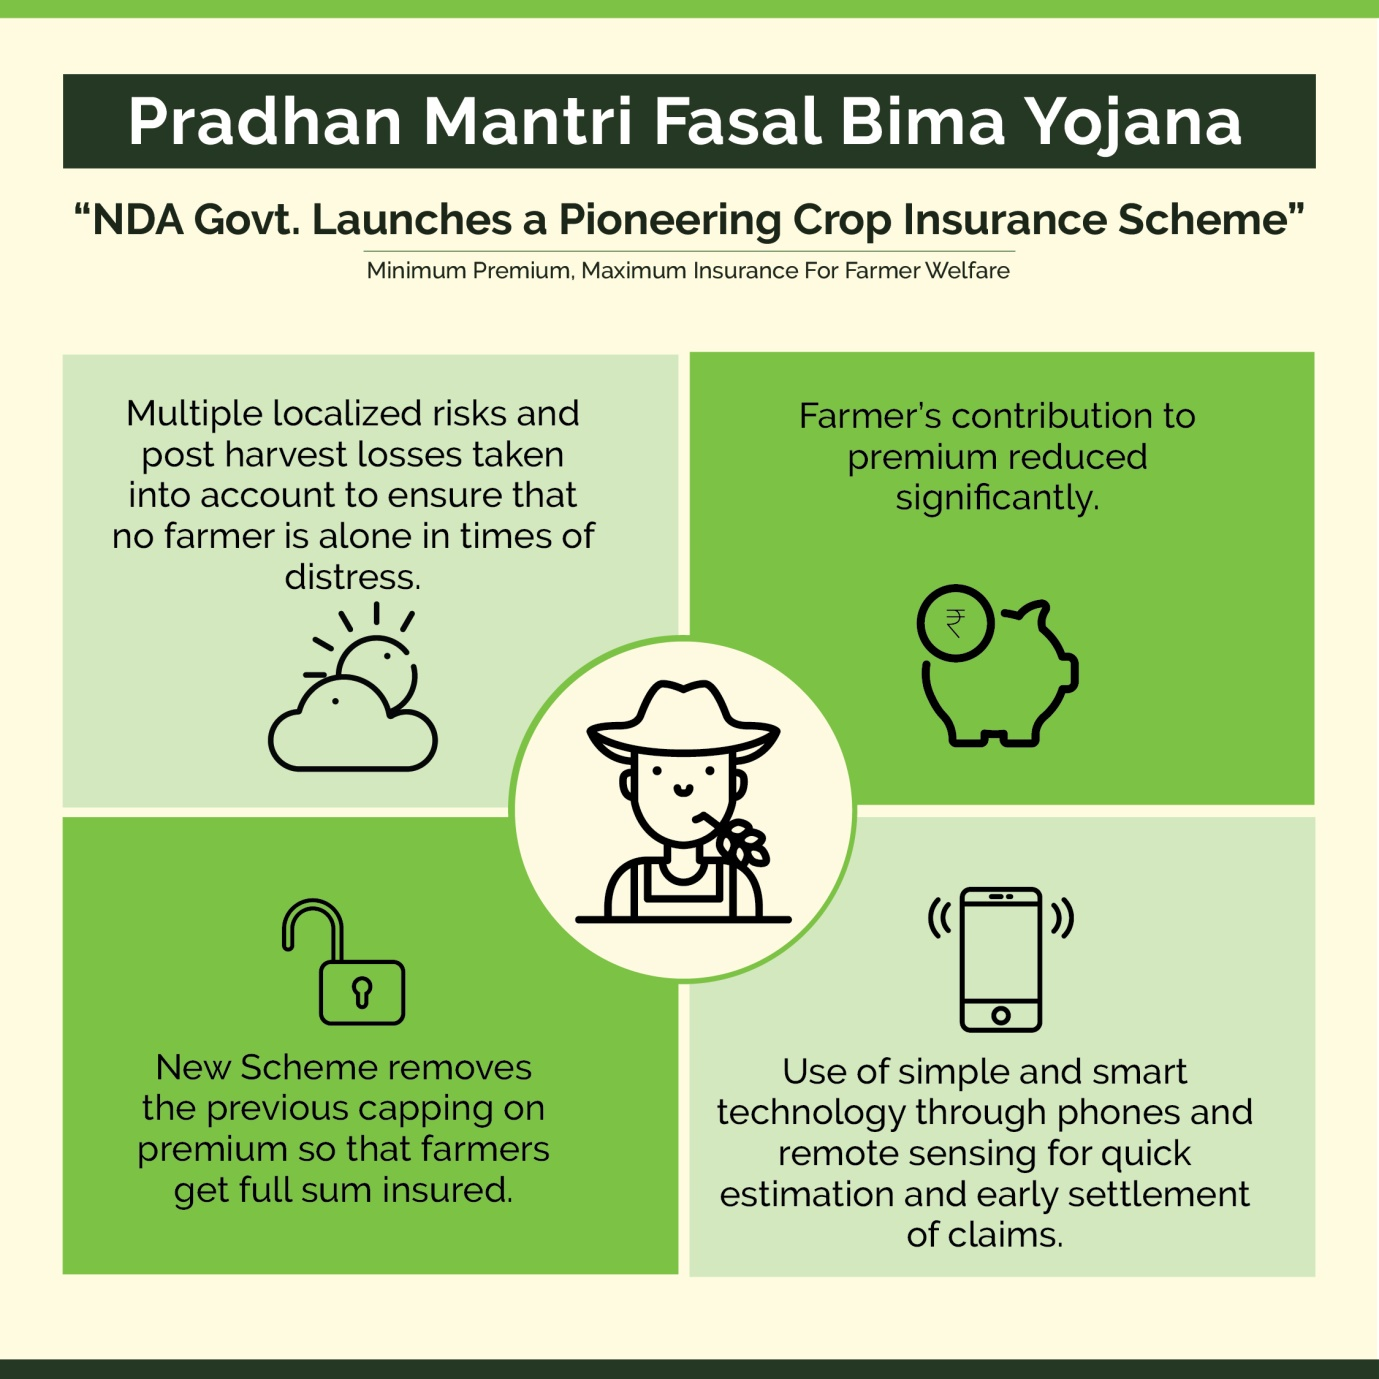 Agriculture in India UPSC Exam Preparation, Issues In News